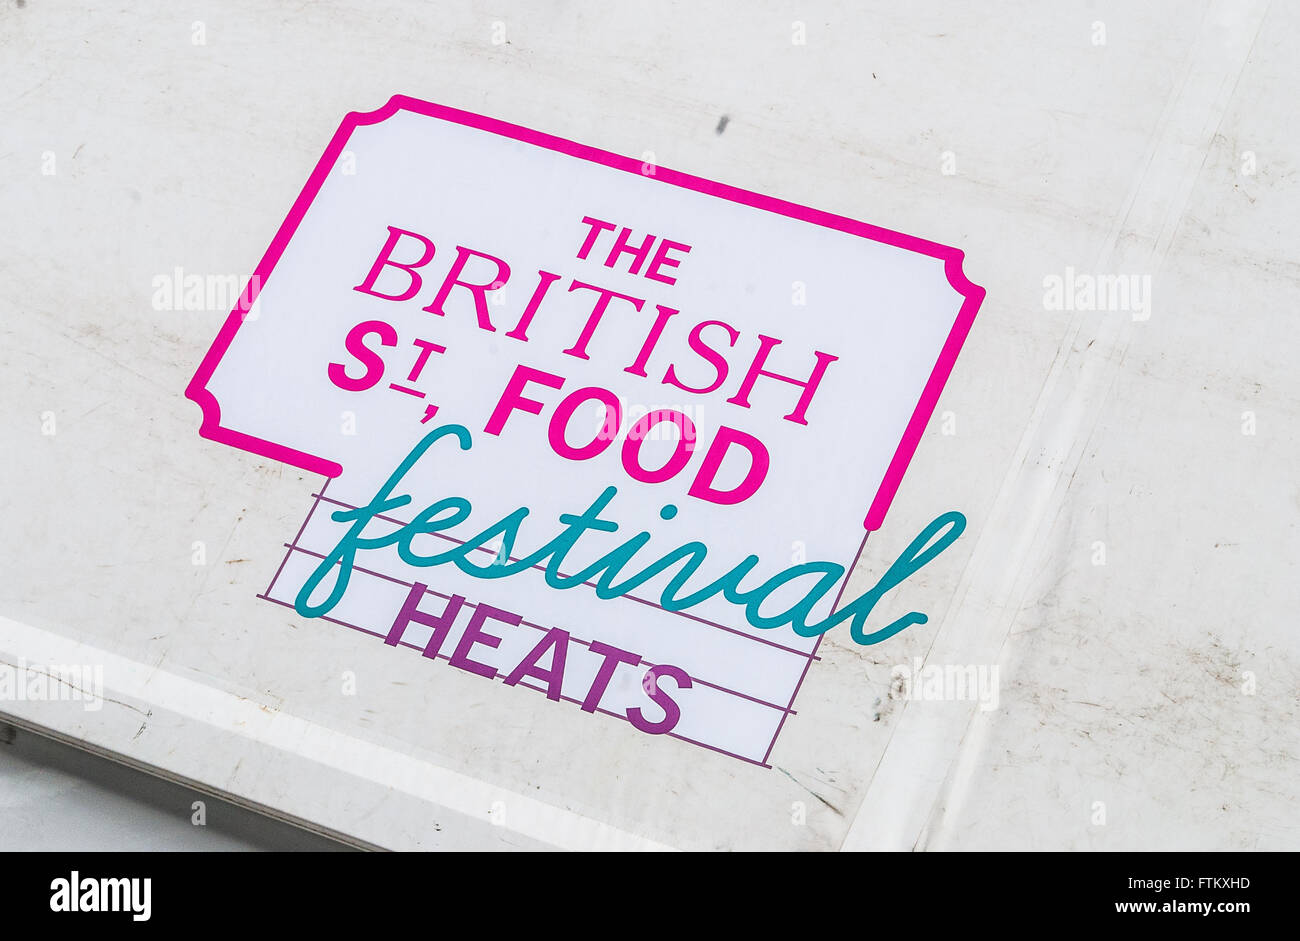 The sign at the British Street Food Festival held in Falmouth, Cornwall UK in 2015 - Stock Image